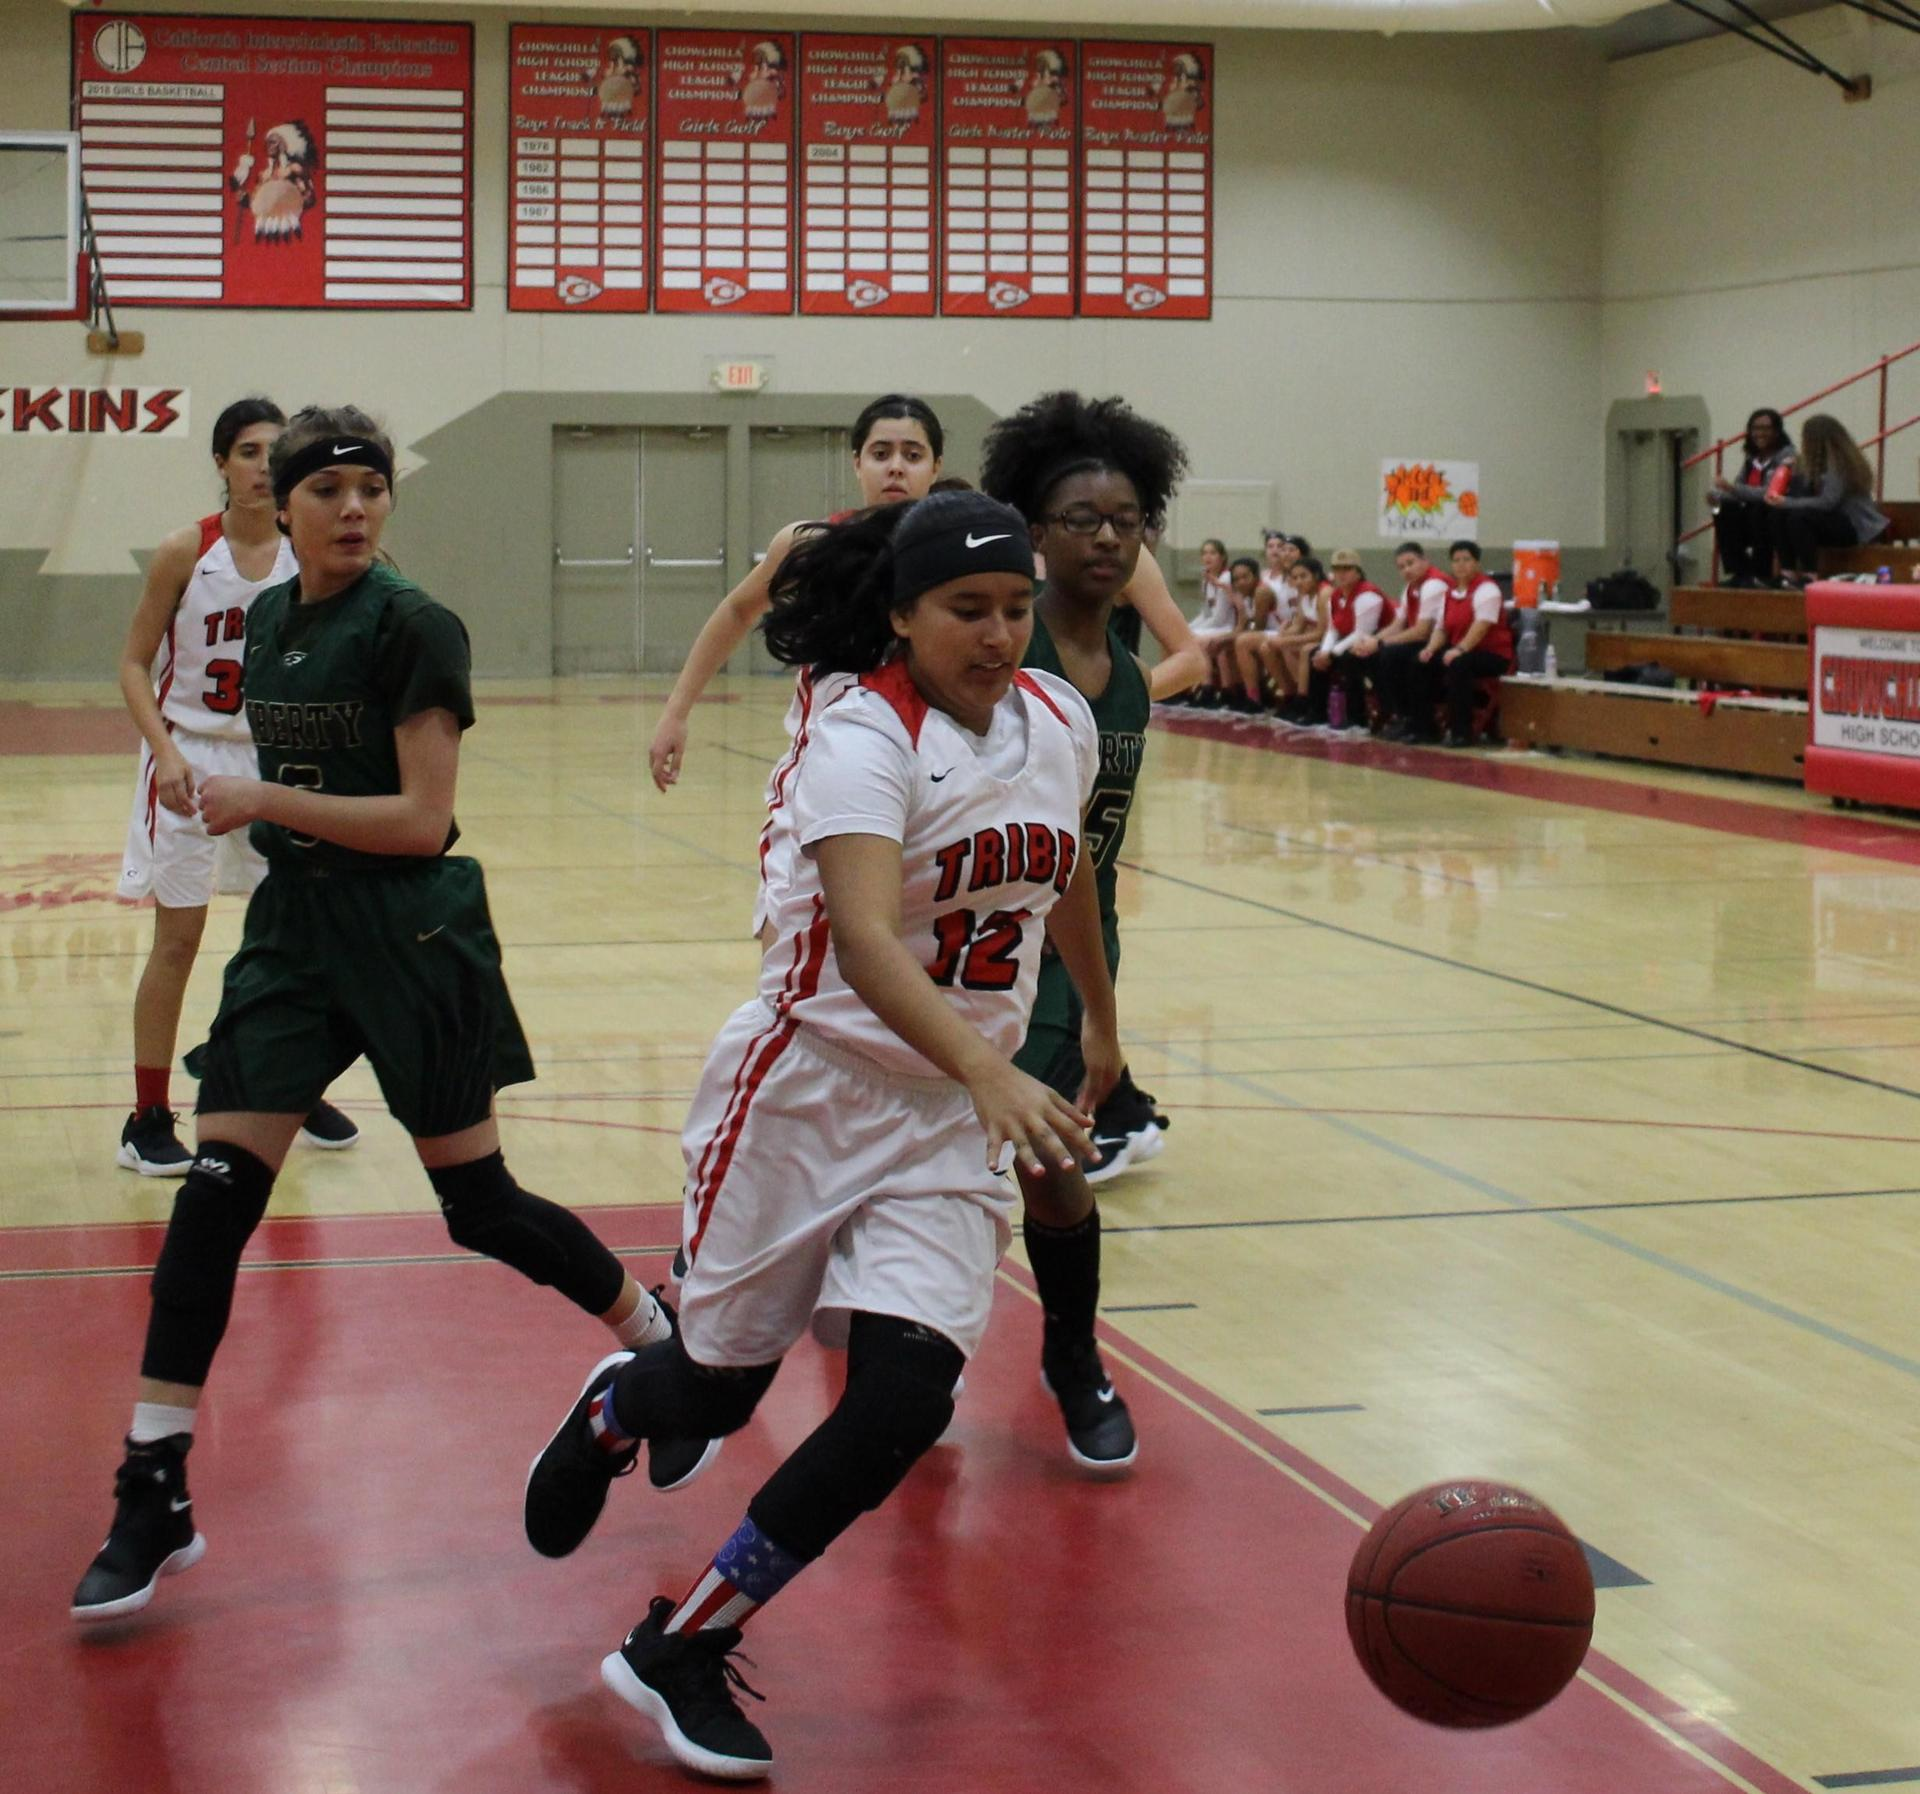 Chowchilla High Athletes at Basketball Game vs Liberty